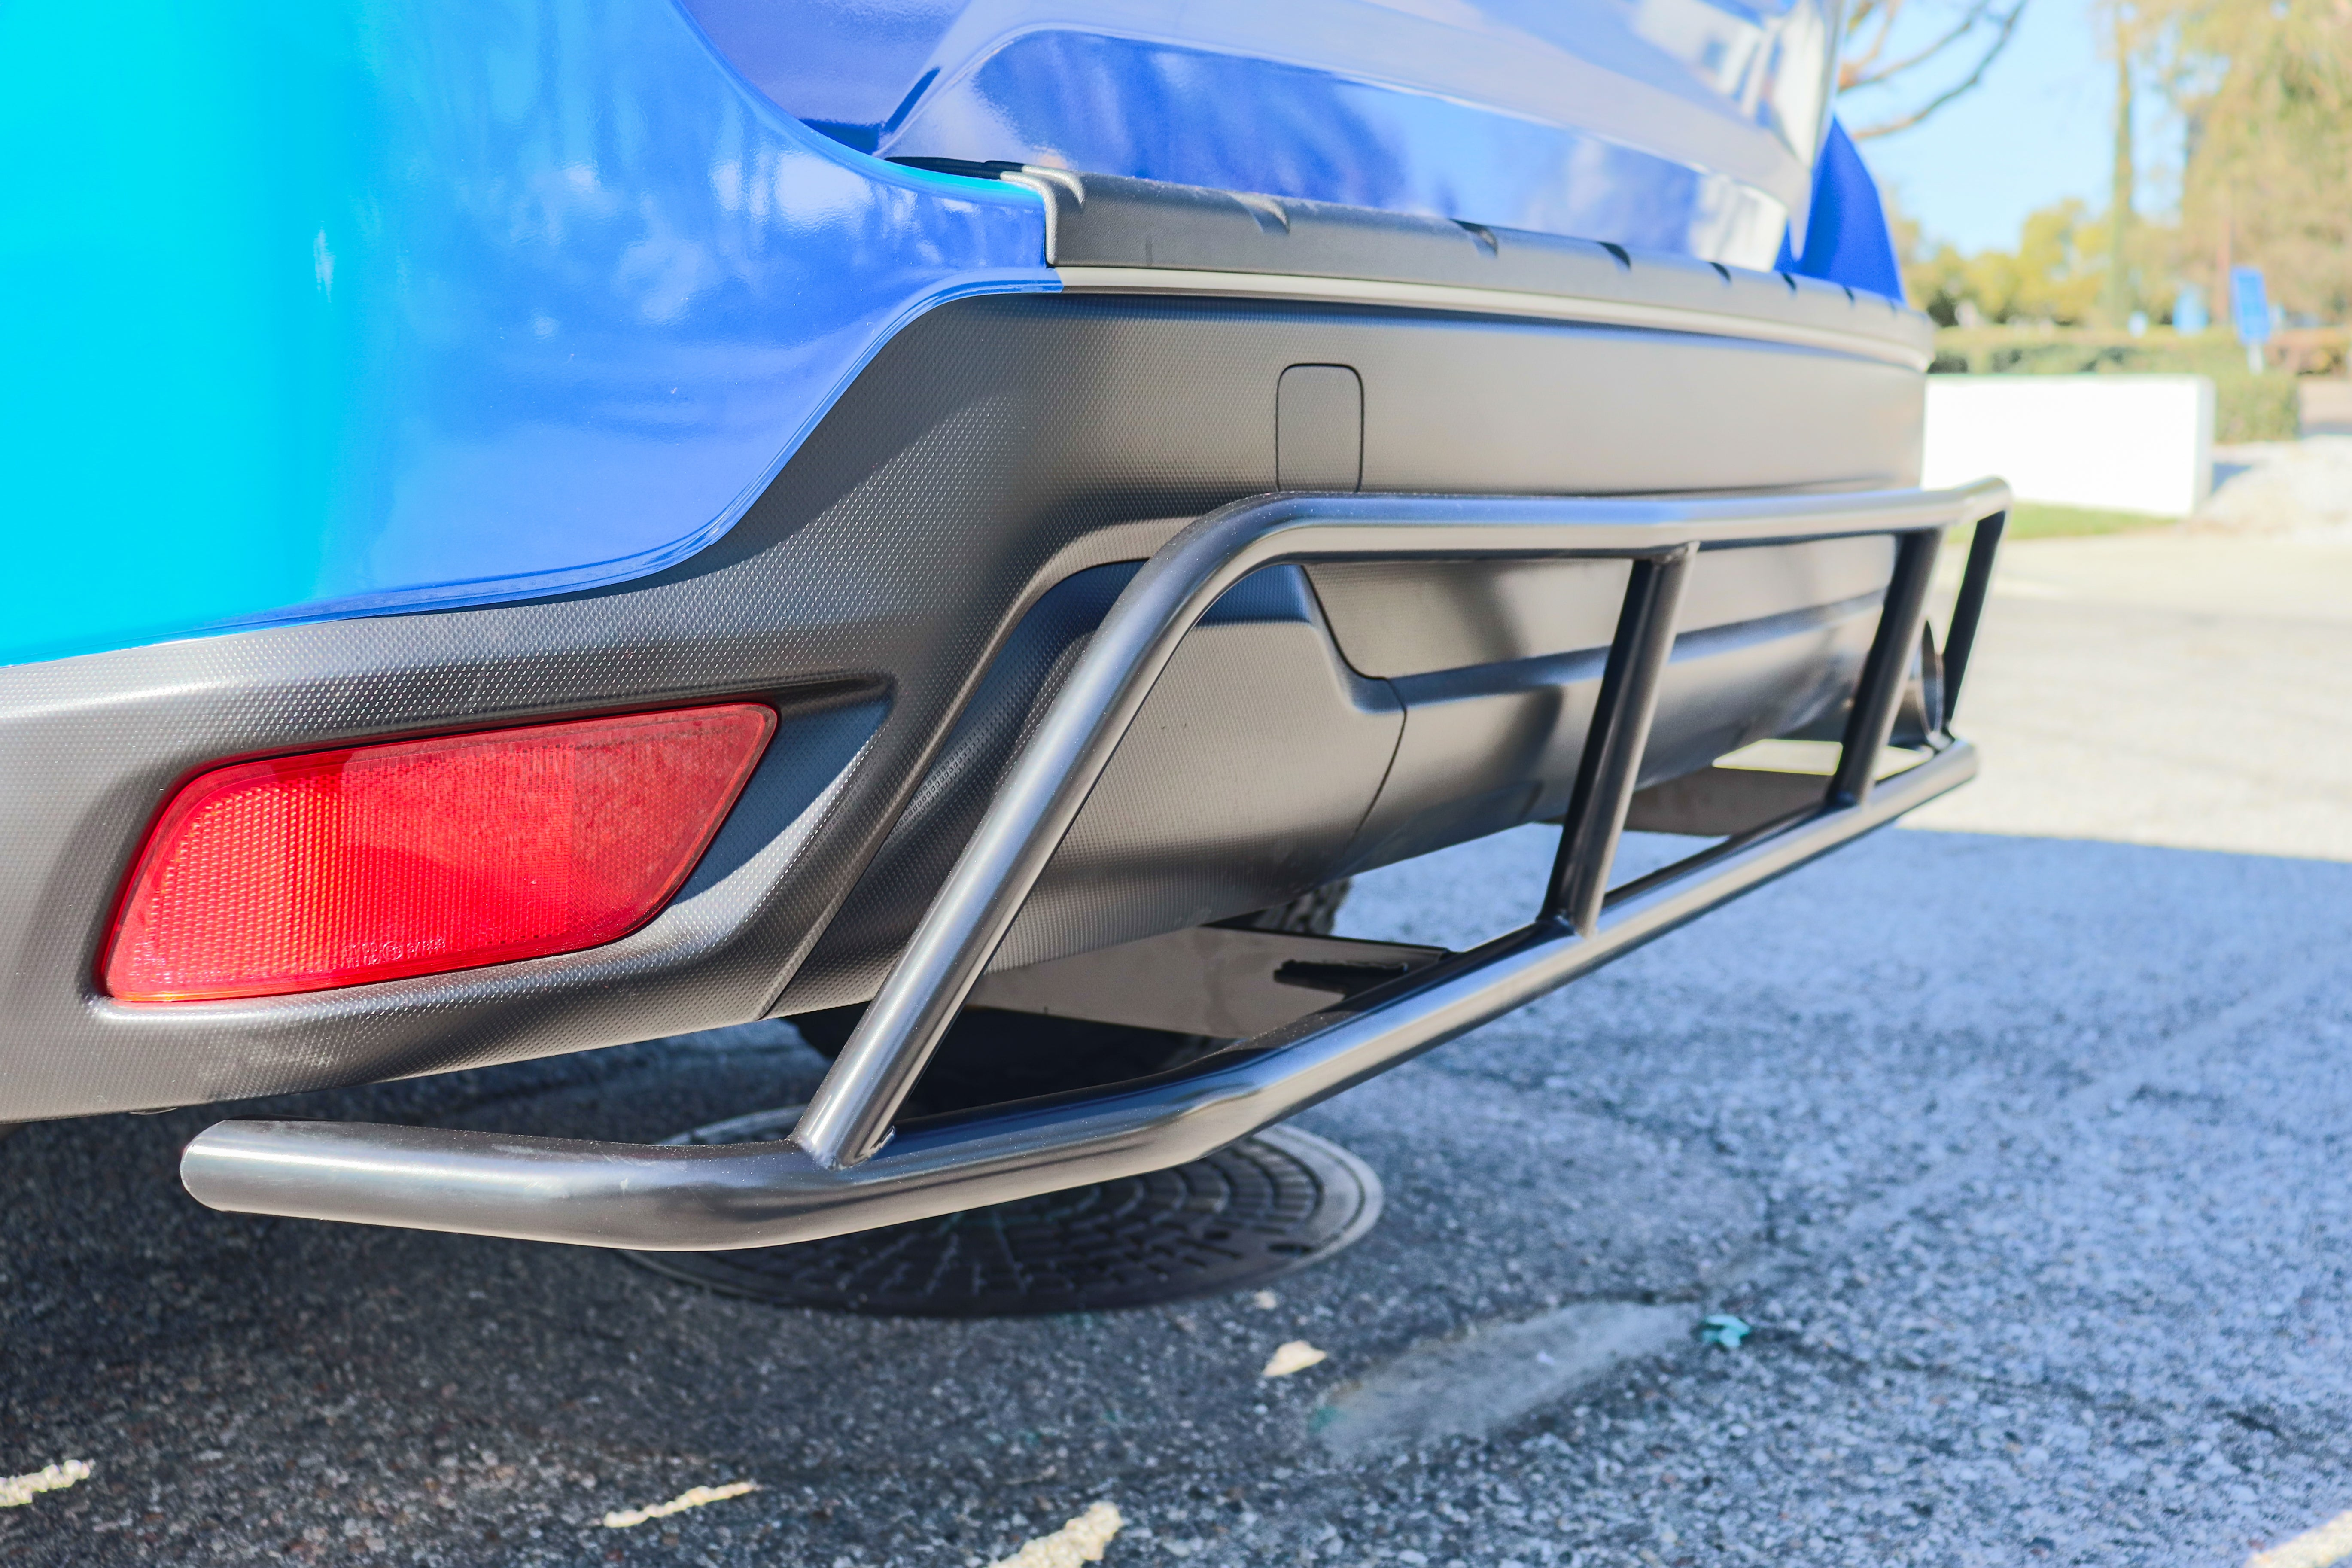 Subaru Forester Rear Bumper Guard by Crawford Performance